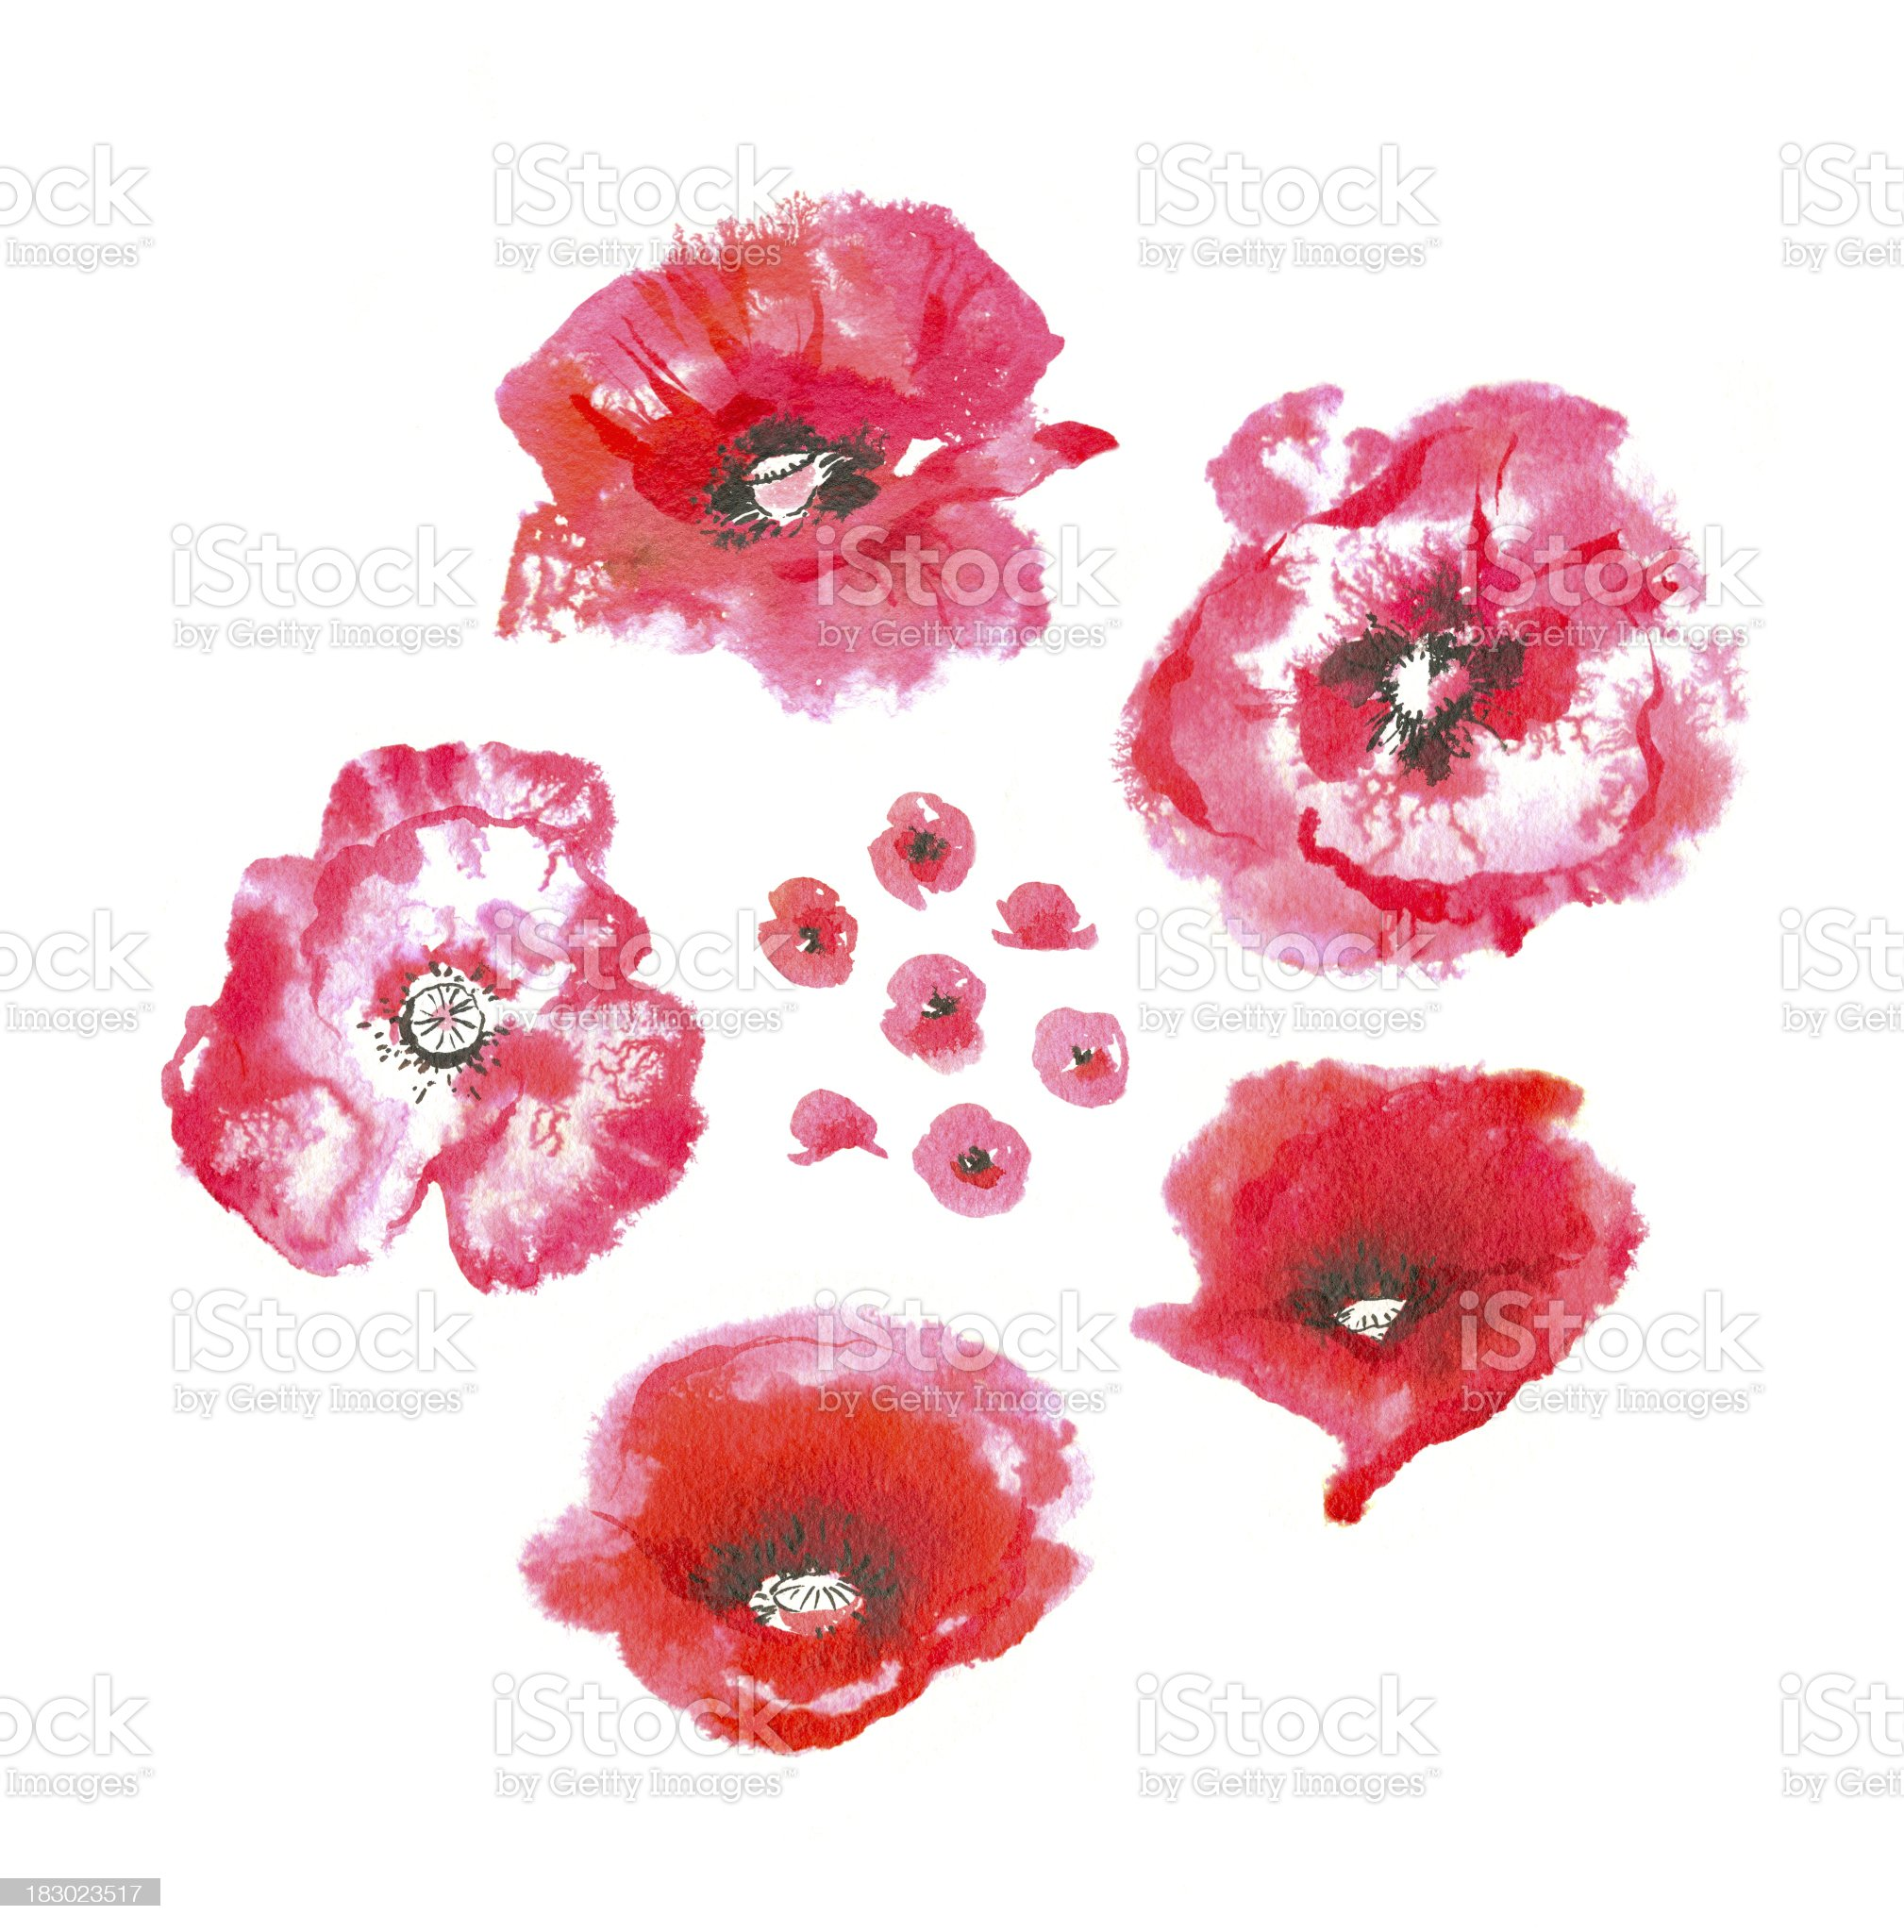 Watercolor Poppies royalty-free stock vector art